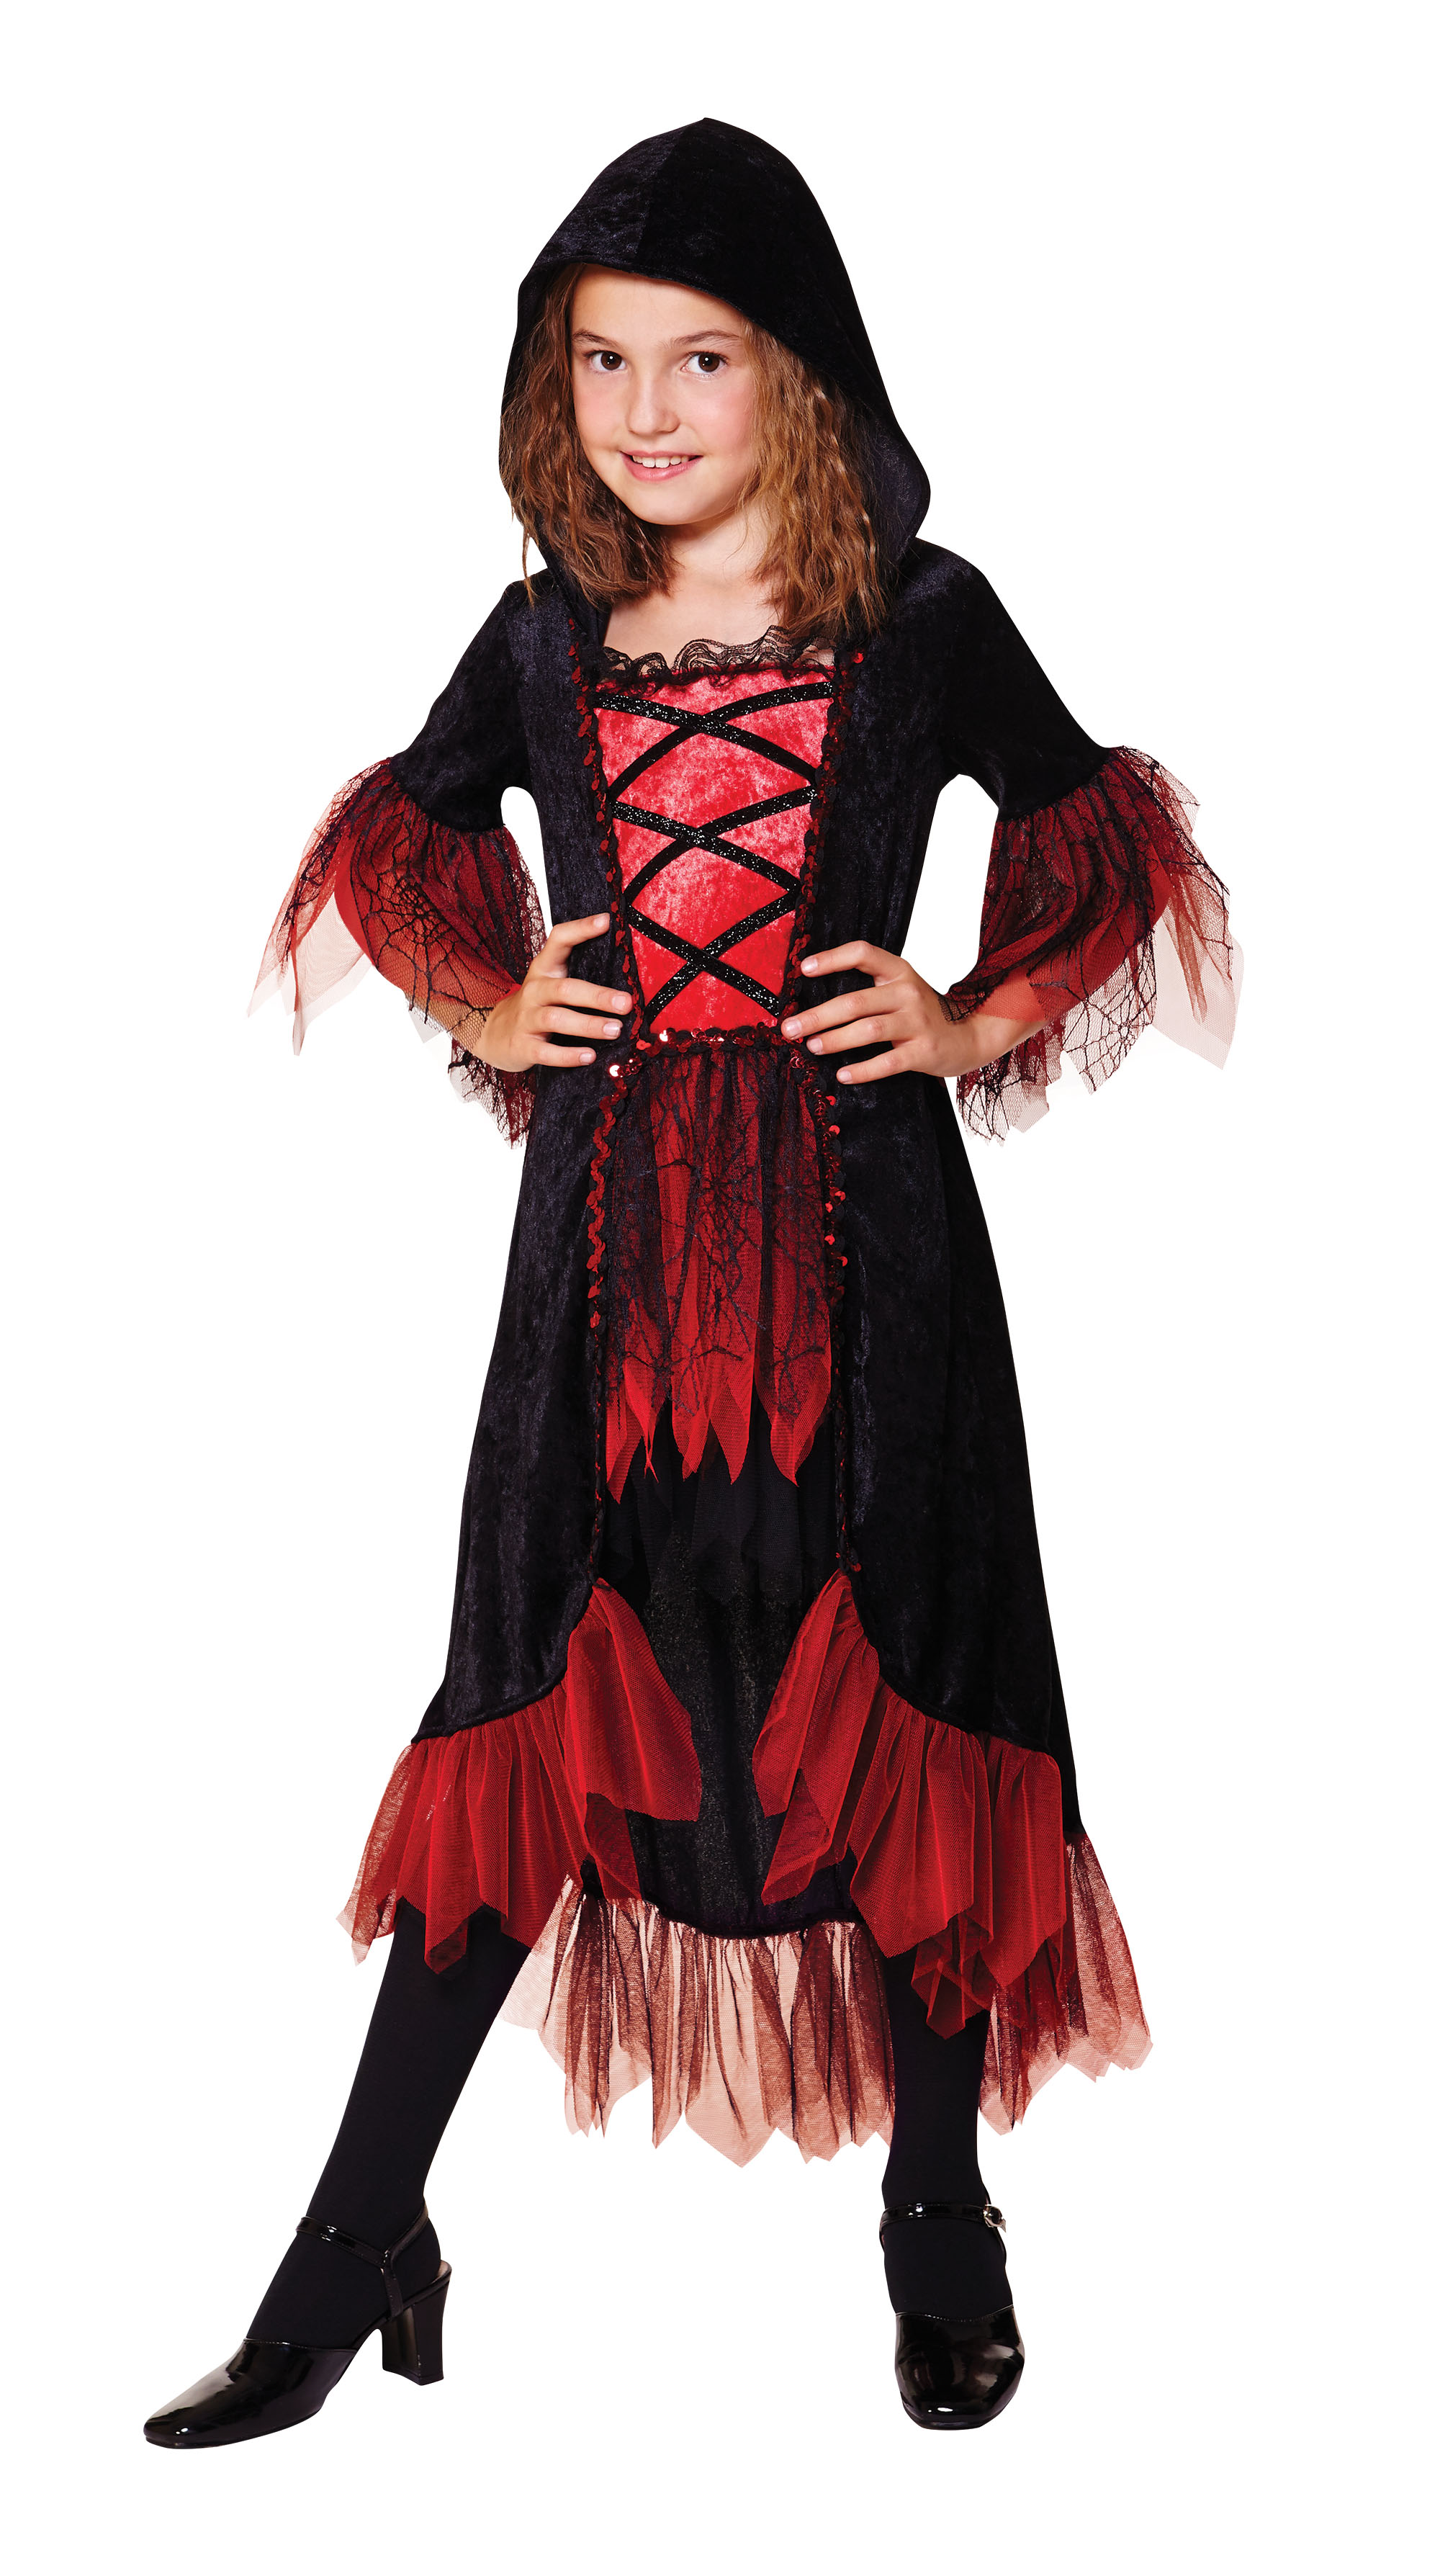 Child's Vampire Girl Hooded Dress